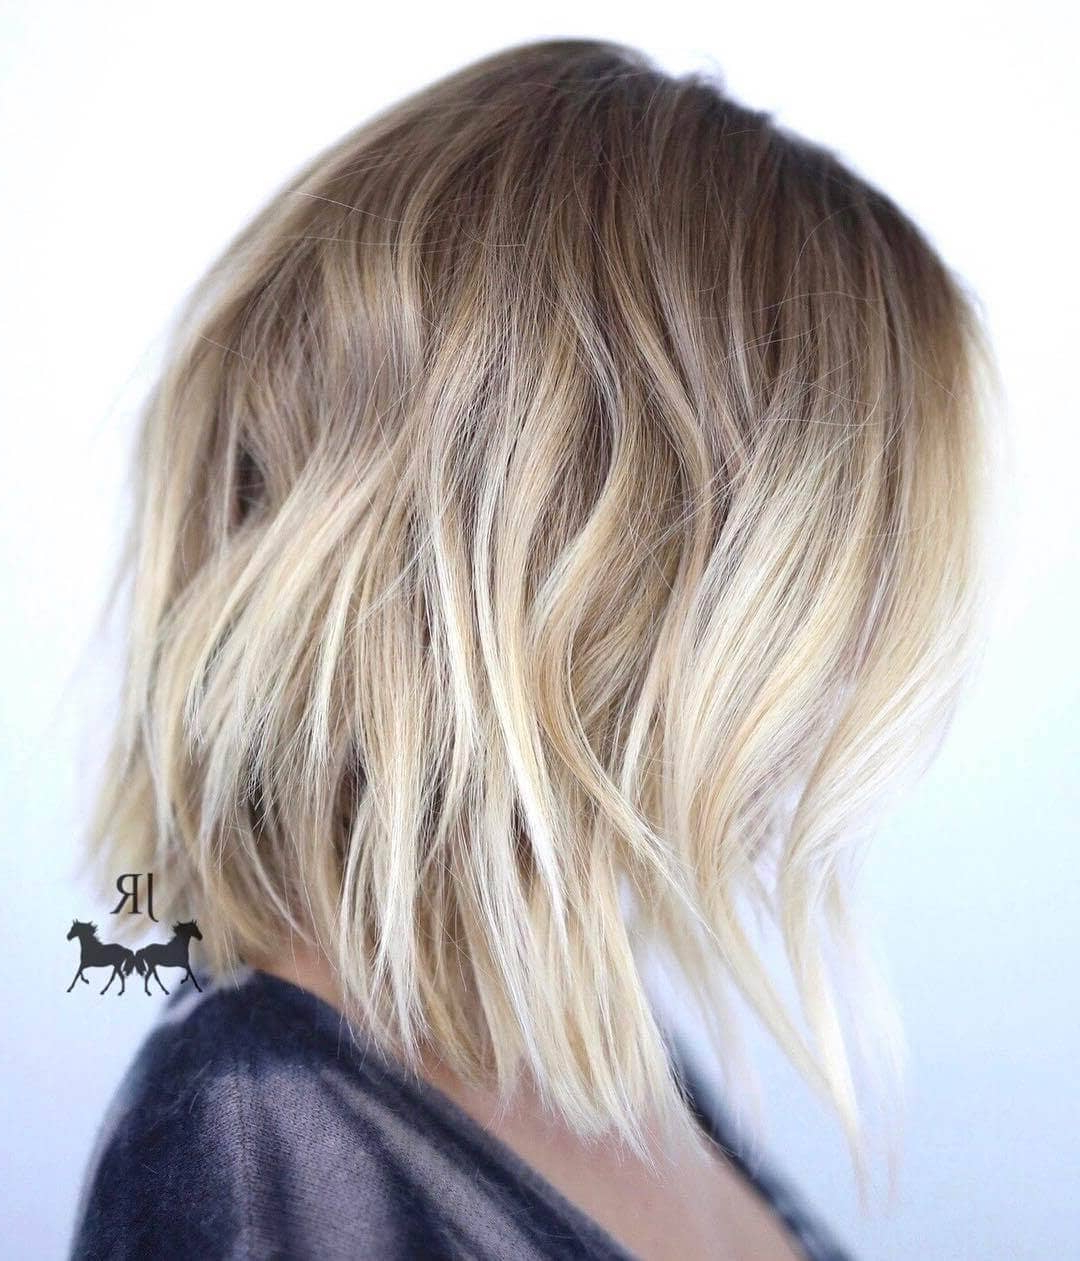 50 Fresh Short Blonde Hair Ideas To Update Your Style In 2018 Within White Blonde Curly Layered Bob Hairstyles (View 6 of 25)